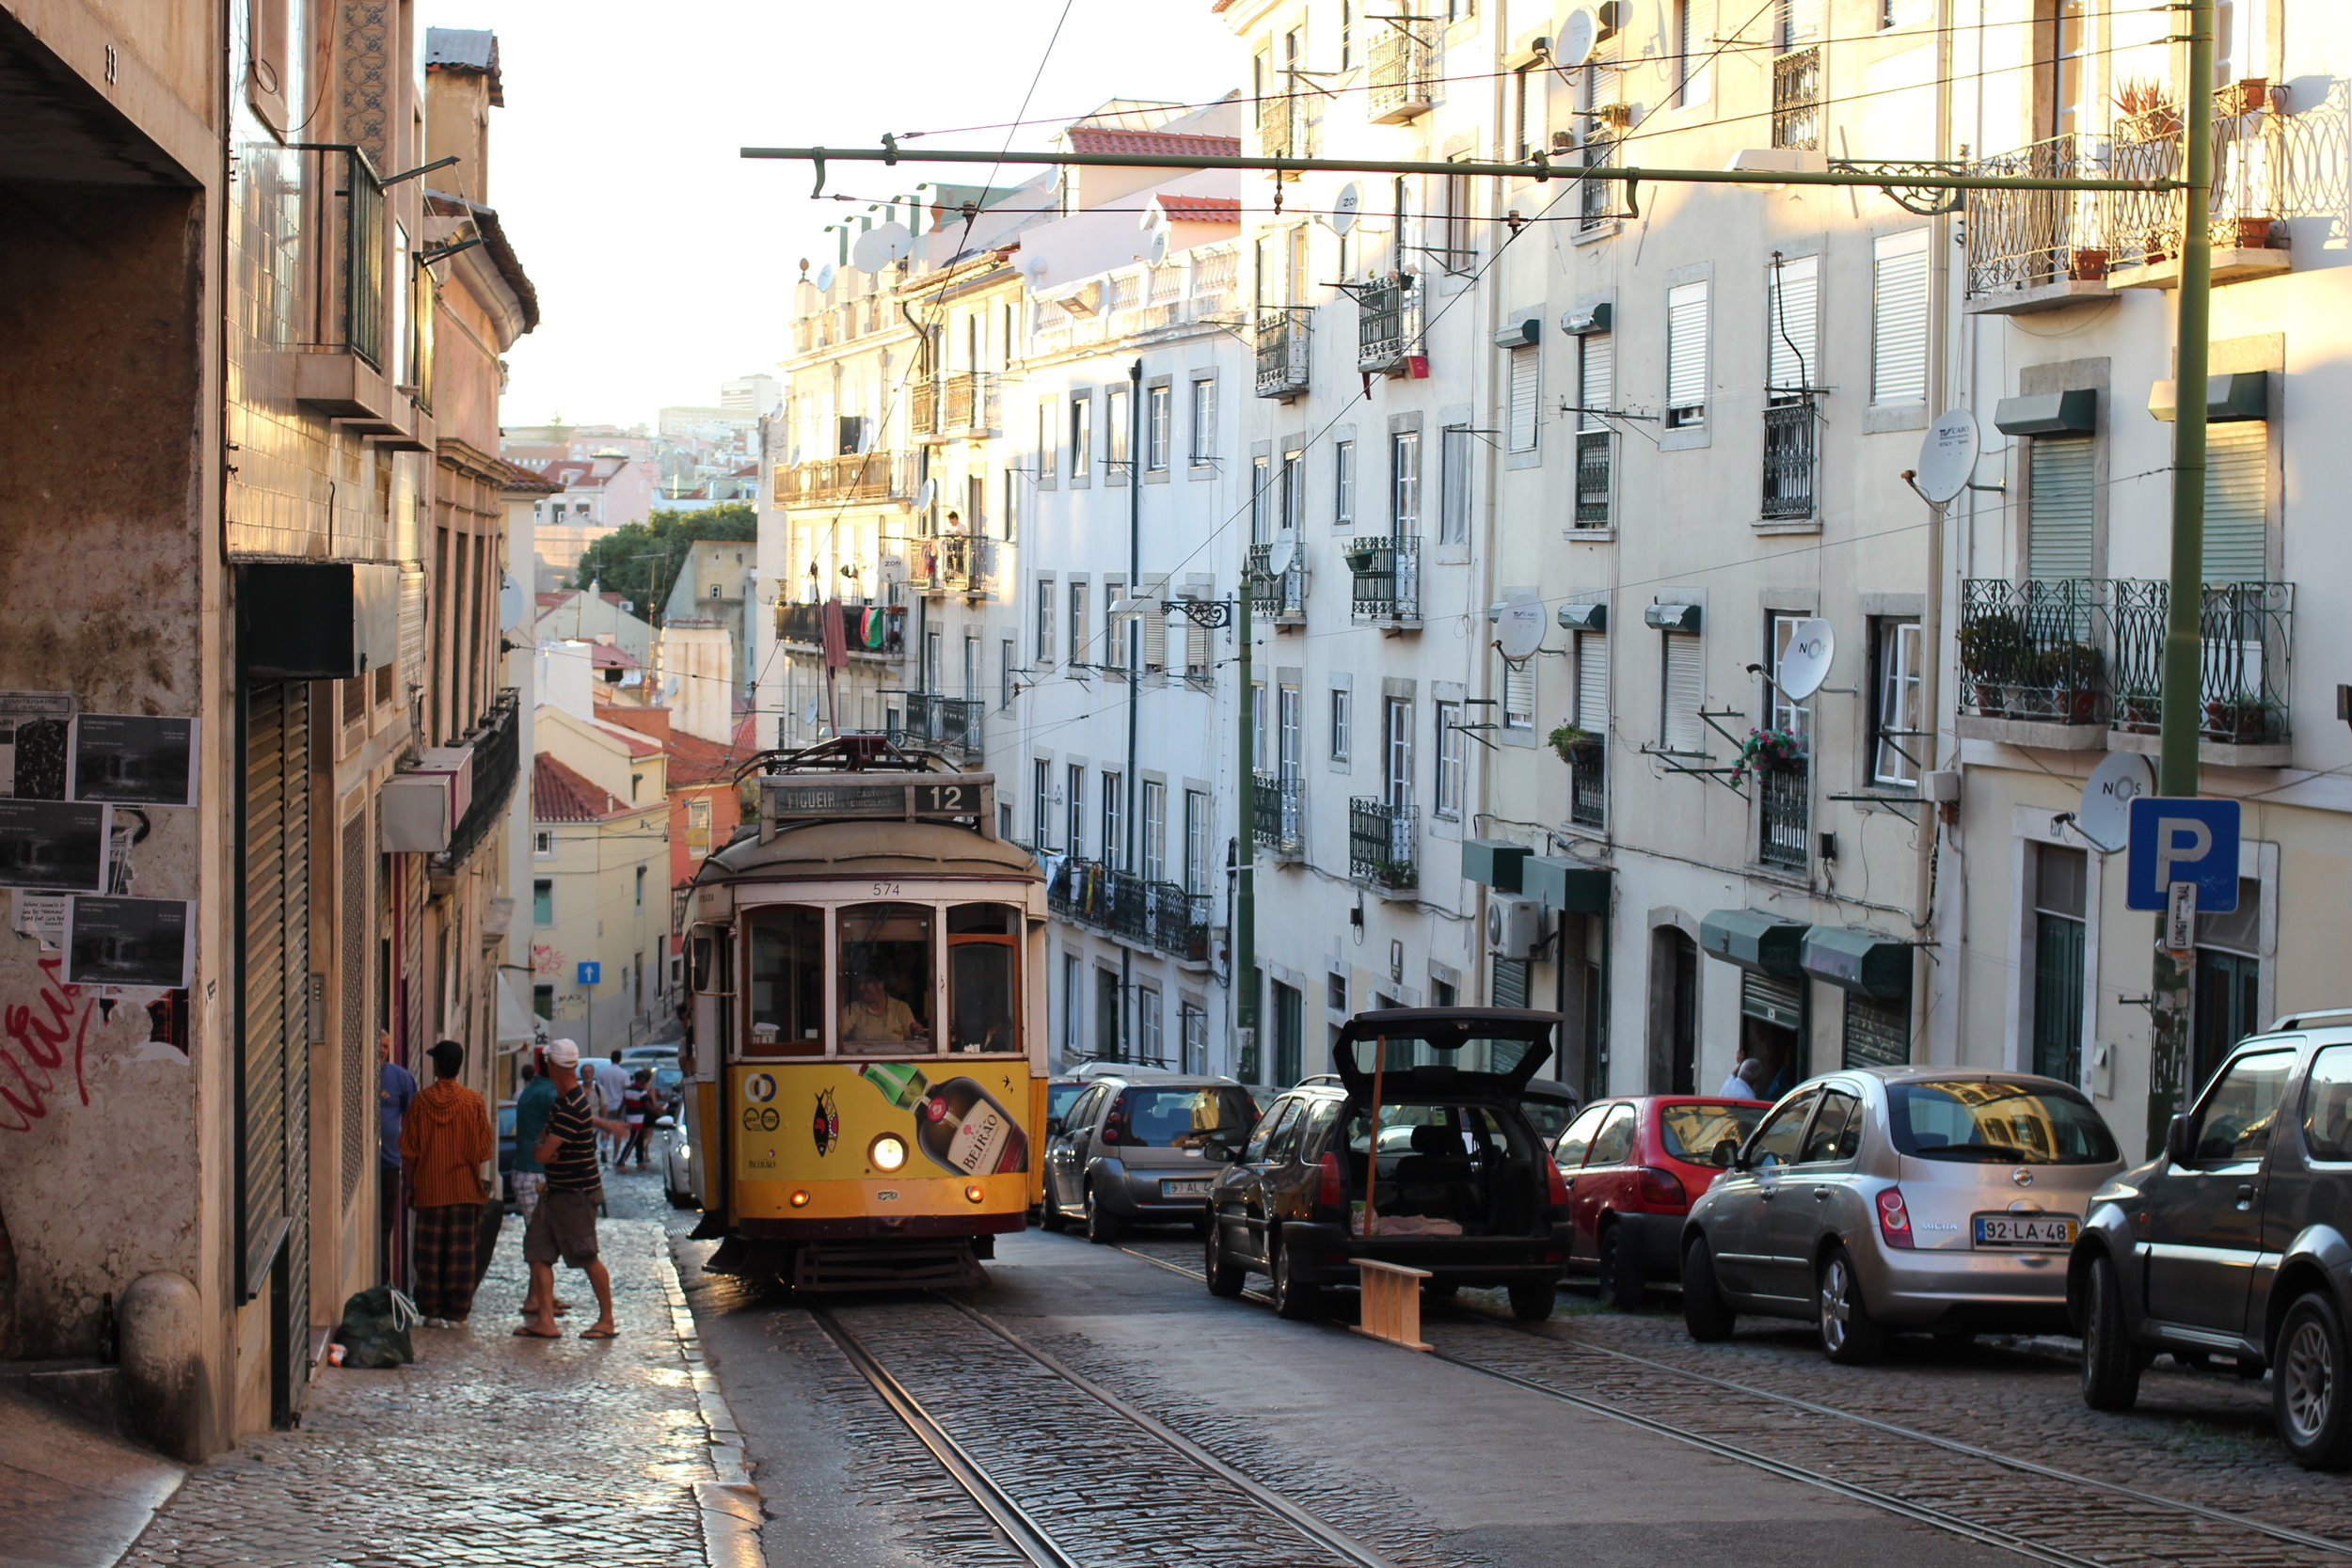 Tired of the hills in Lisbon? Jump on the tram and enjoy the rest.